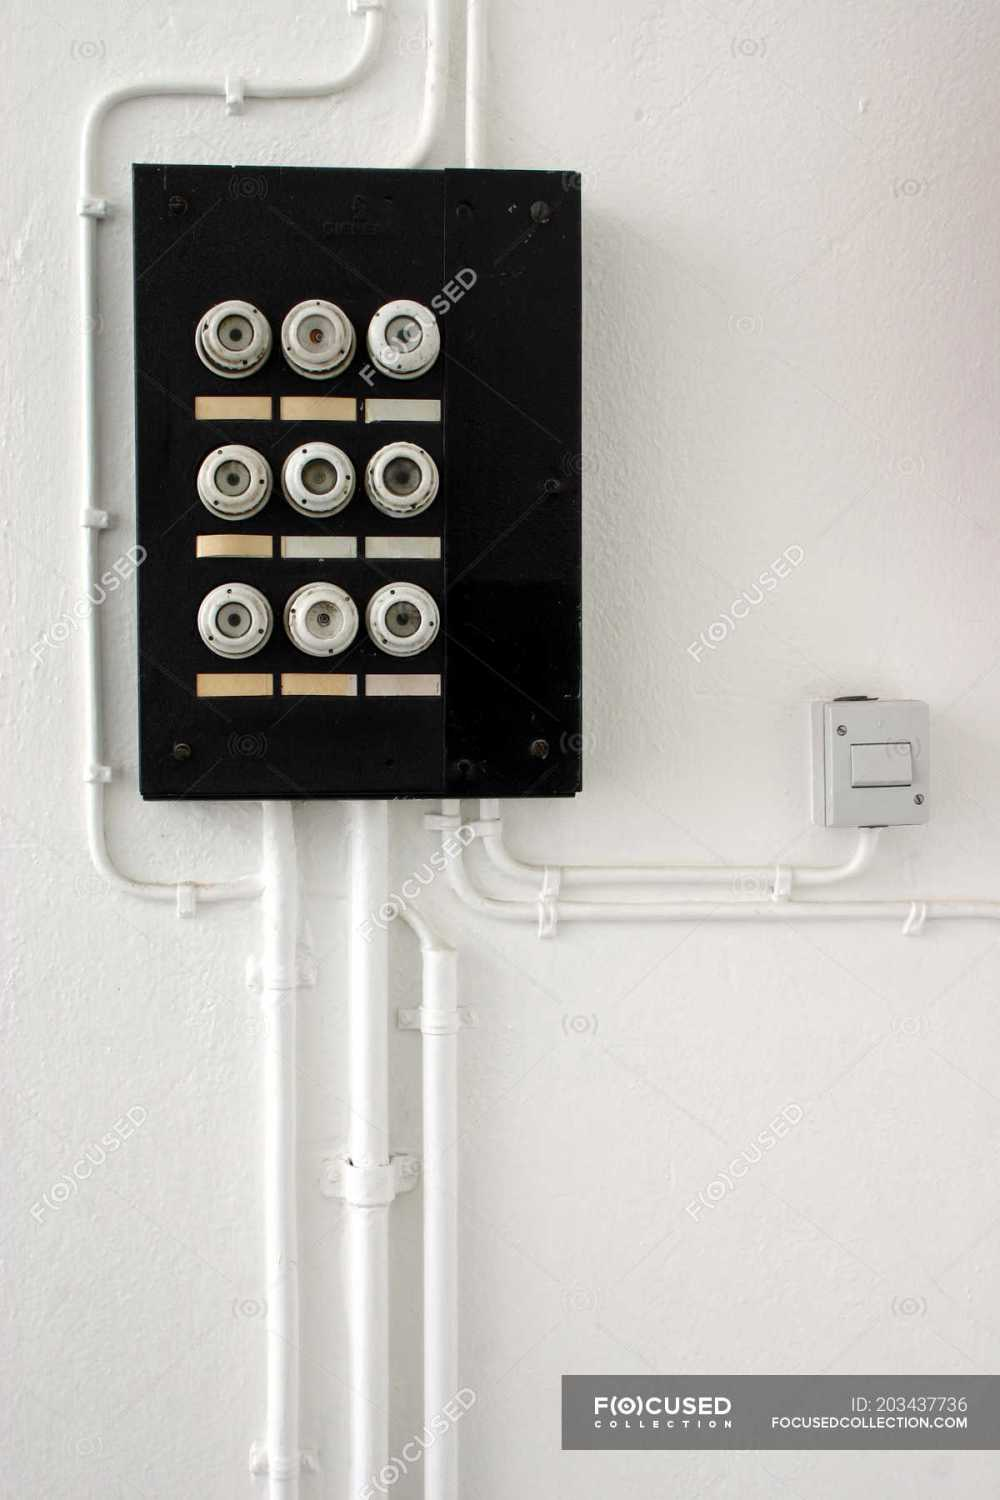 medium resolution of wall with fuse box safety switch server stock photos